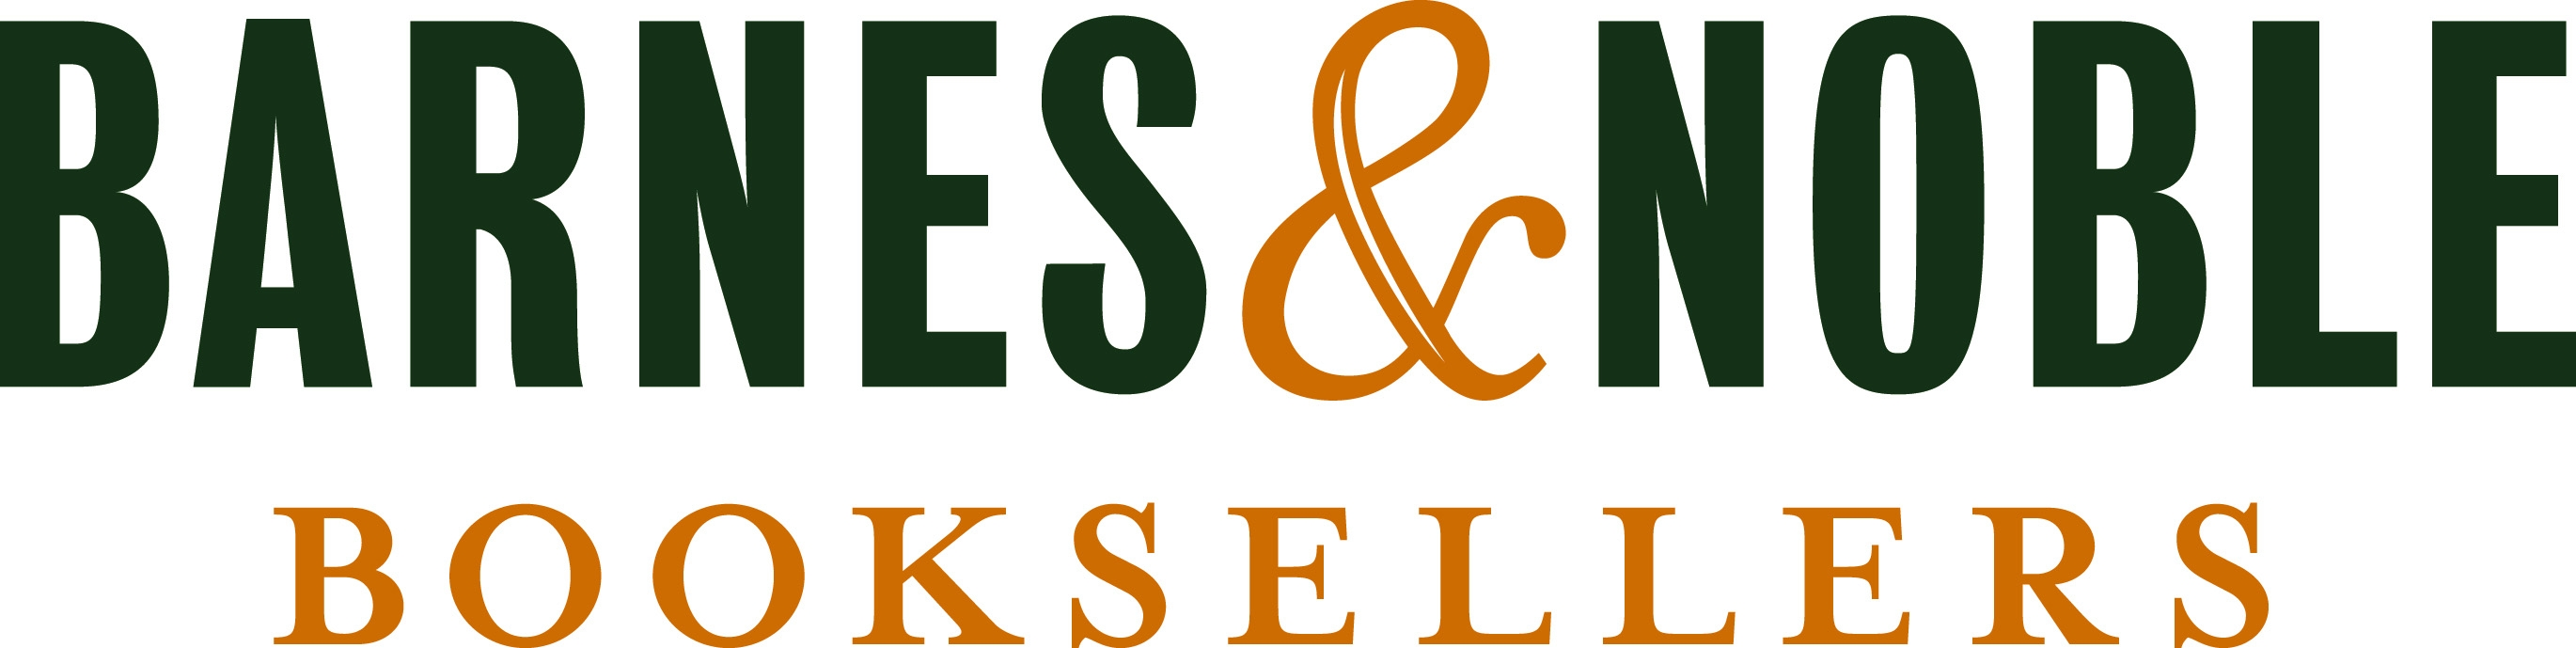 barnes_noble_logo   Welcome to Williamsburg Christian Academy